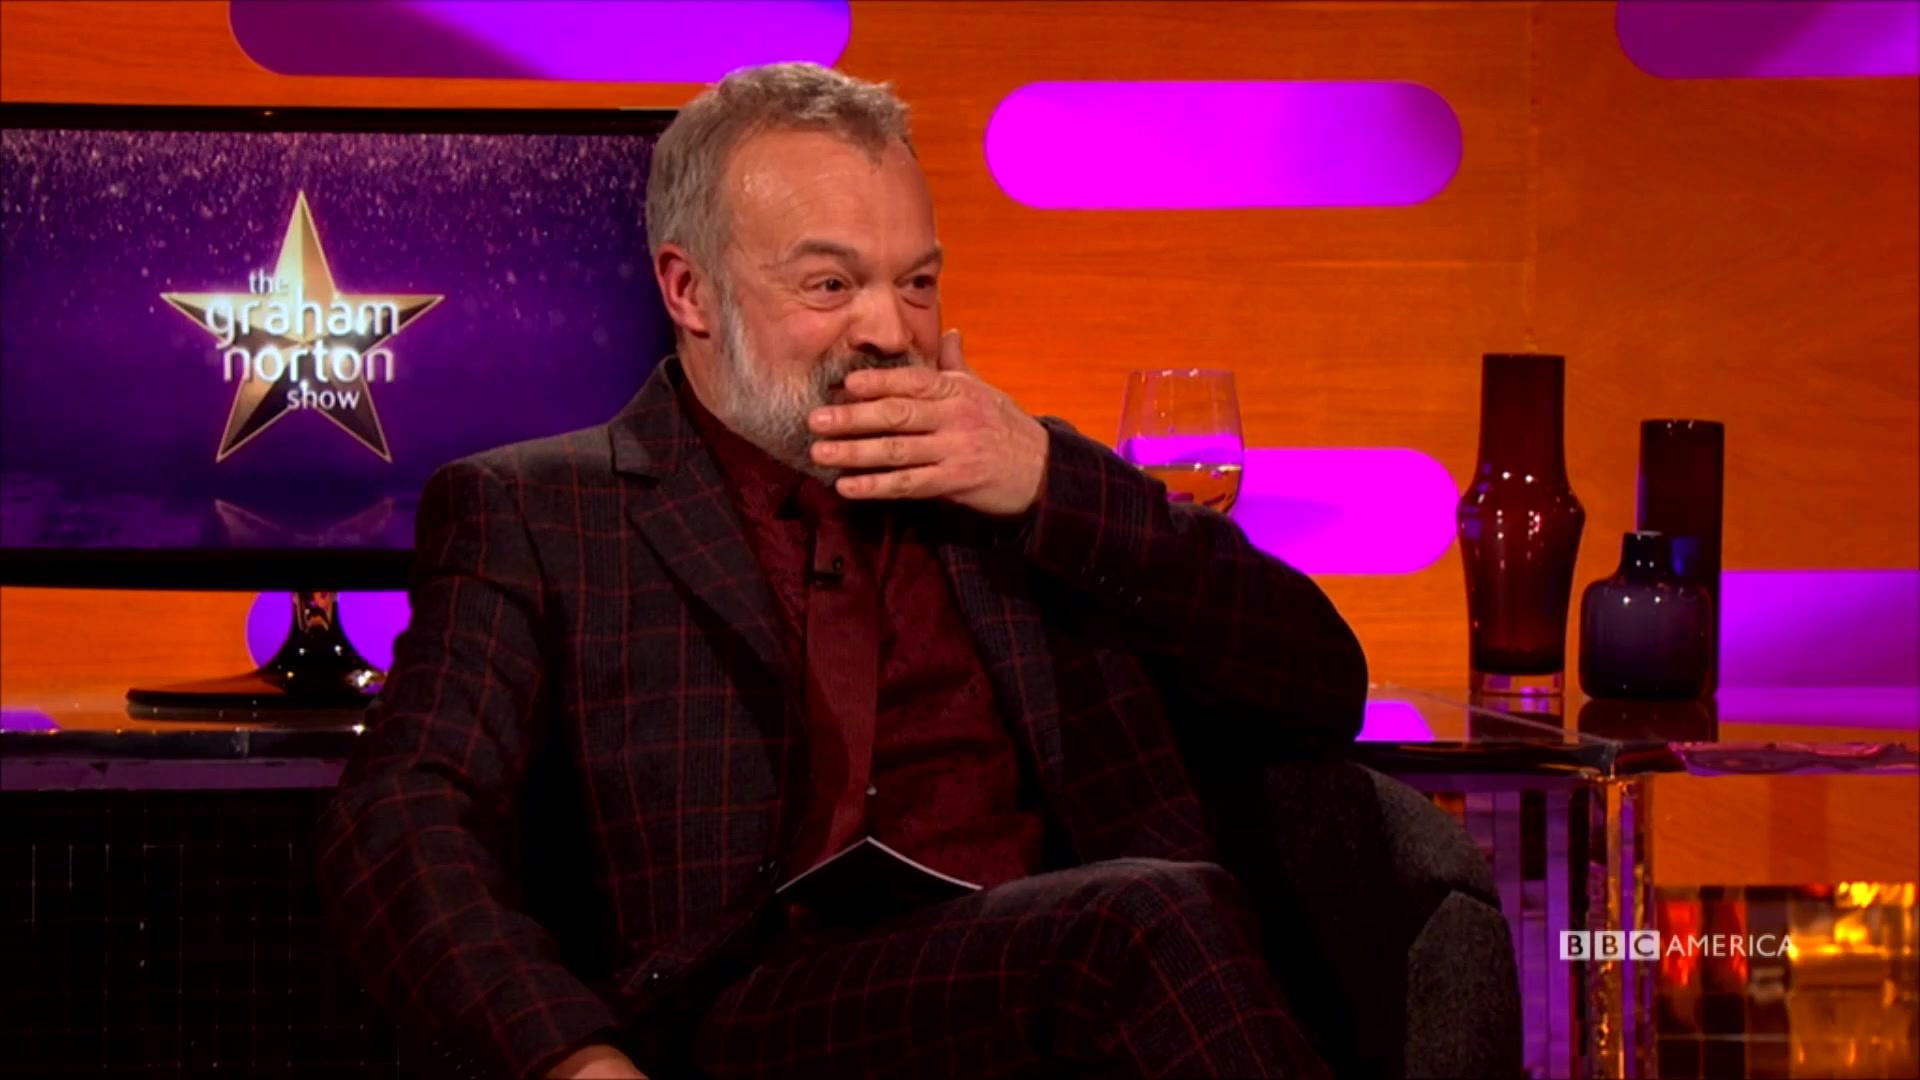 The Graham Norton Show features liquor served to guests